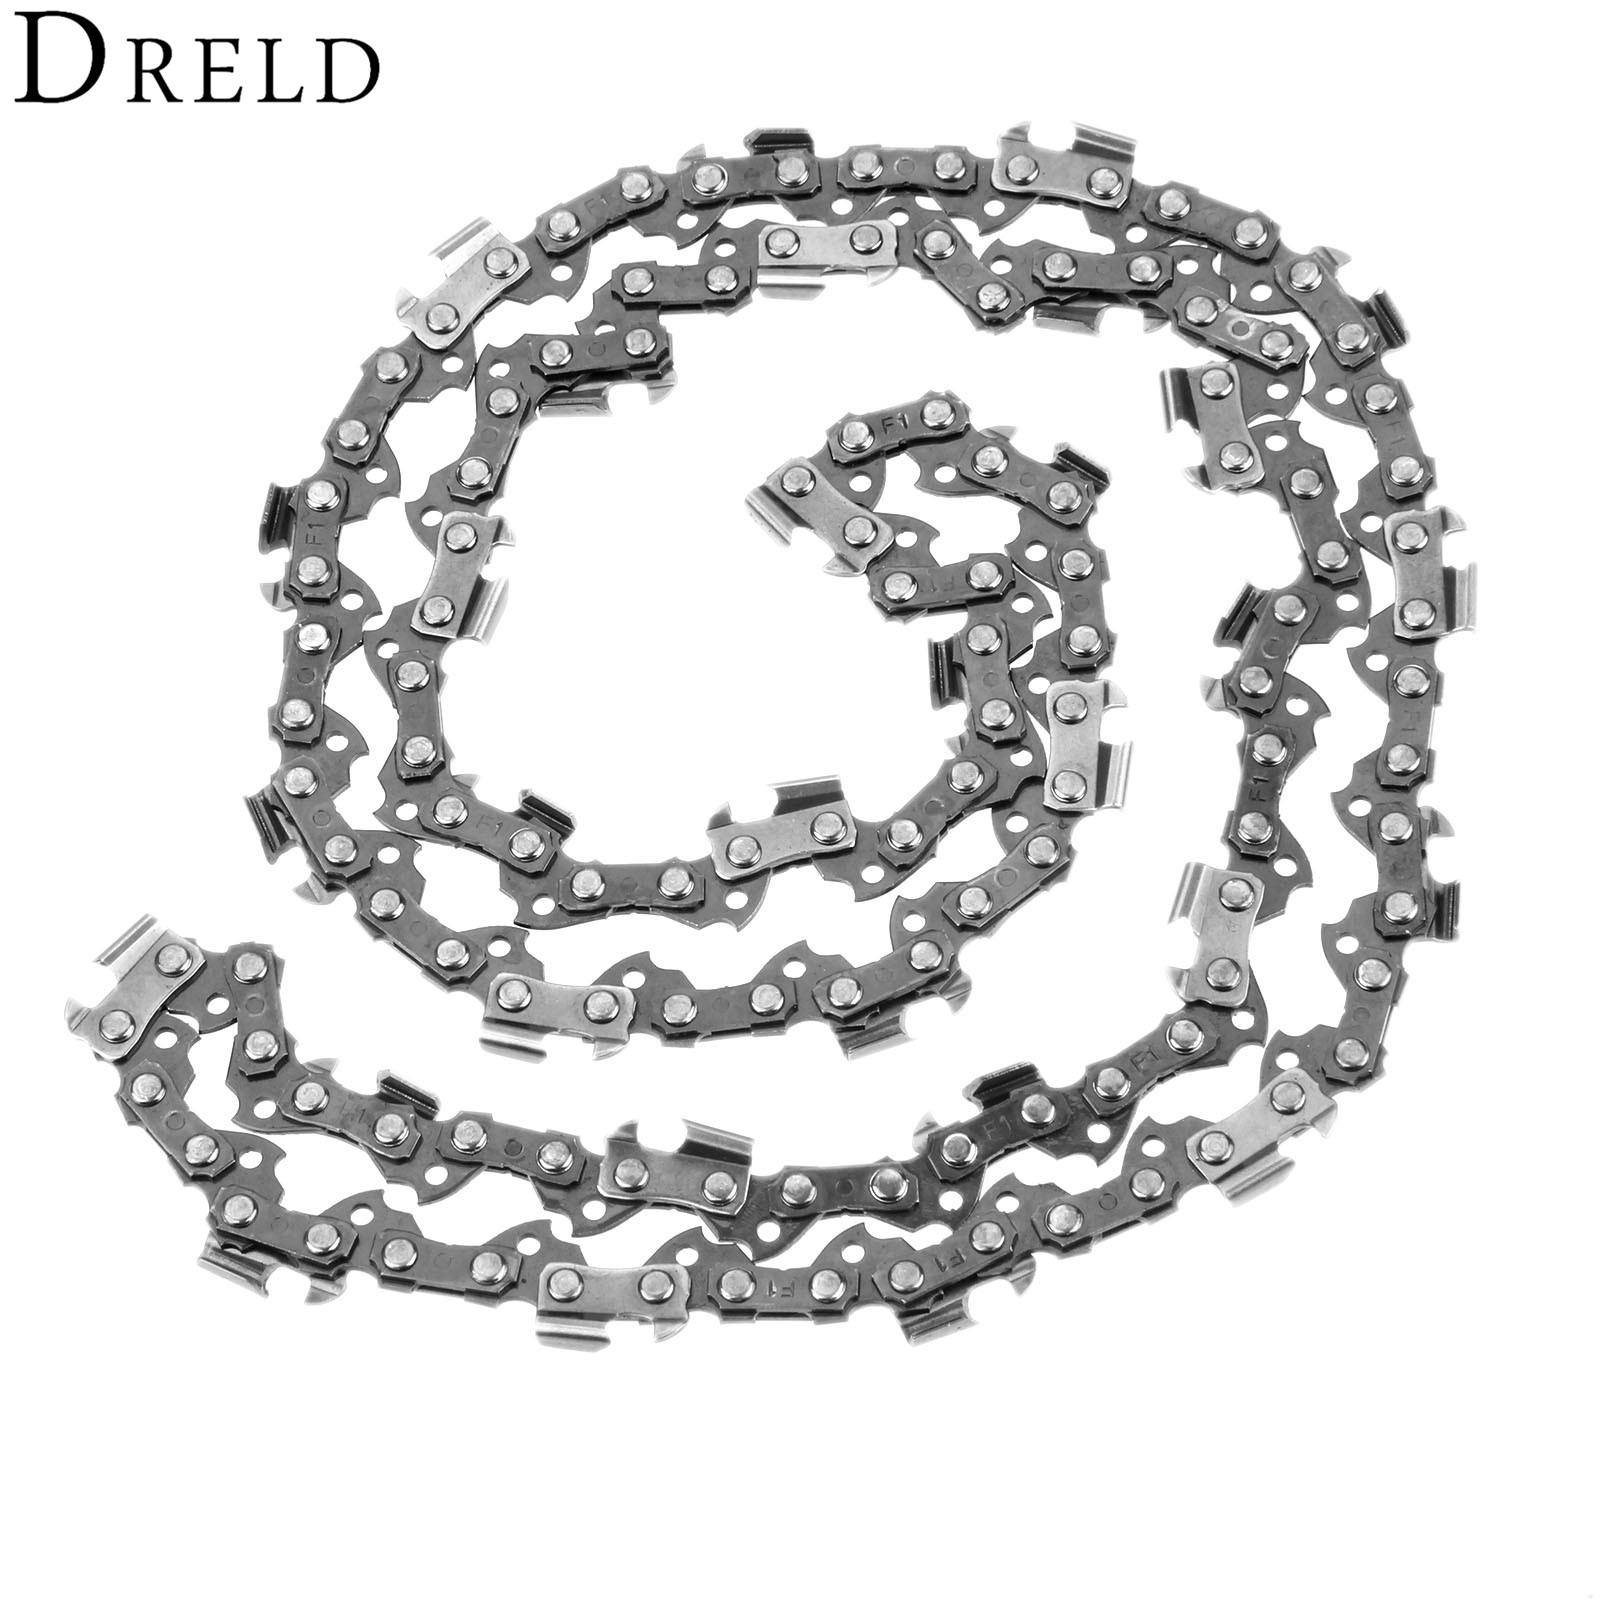 DRELD 46cm 18 Semi Chisel Chainsaw Chain 3/8 0.050 62DL Wood Cutting Saw Chain For H-omelite P-oulan Pro Models Chainsaw Parts genuine piston 36mm for zenoah g3000 g3000t chainsaw free original chain saw cheap kolben parts p n 513 5870 01